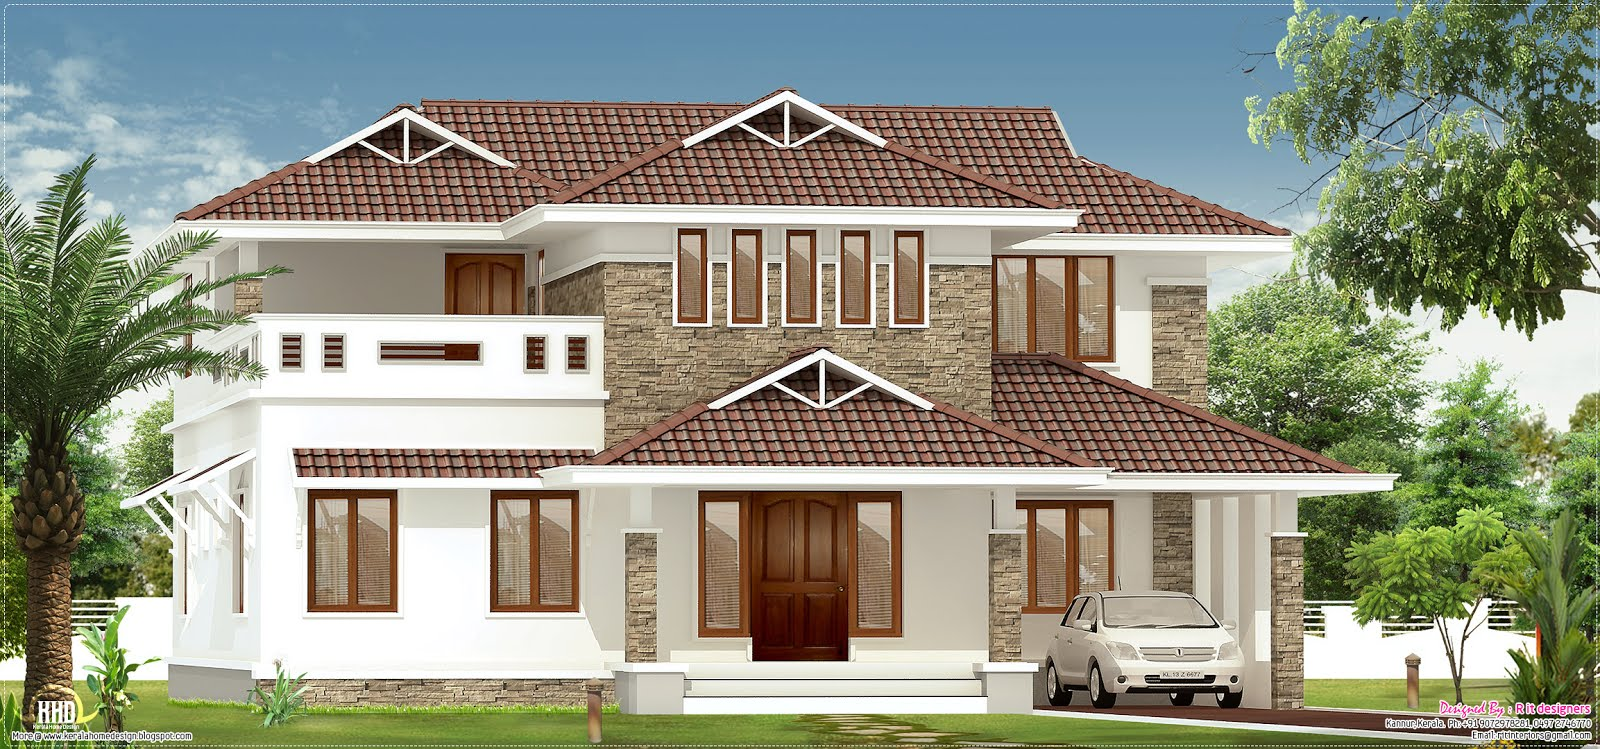 bedroom sloping roof home design by r it designers kannur kerala